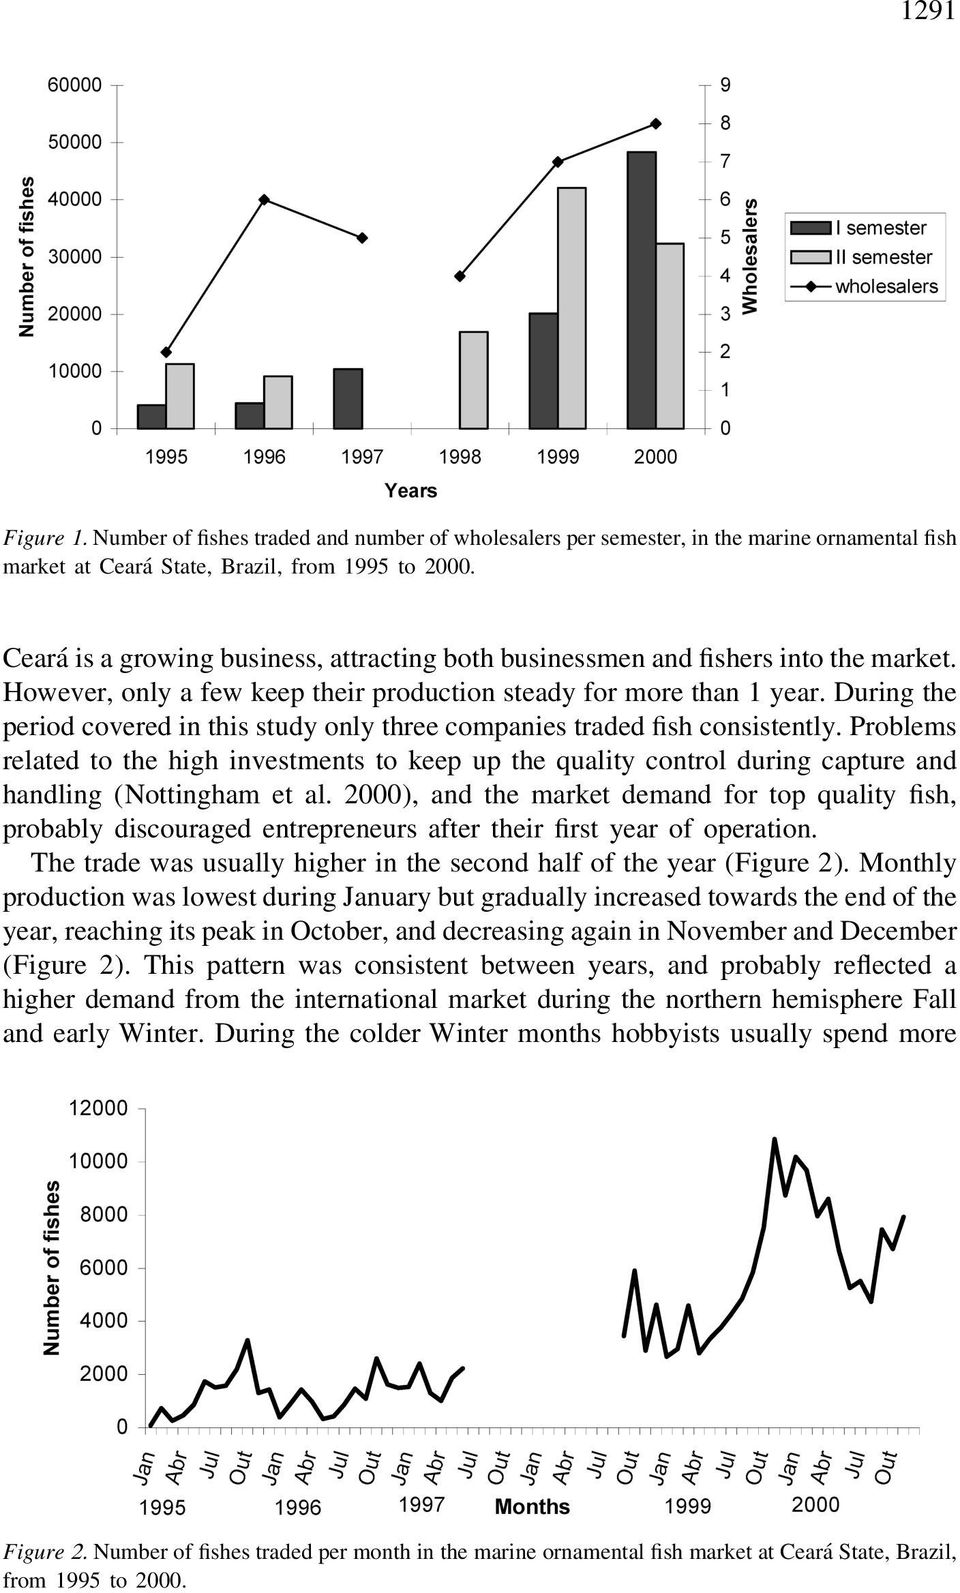 During the period covered in this study only three companies traded fish consistently.